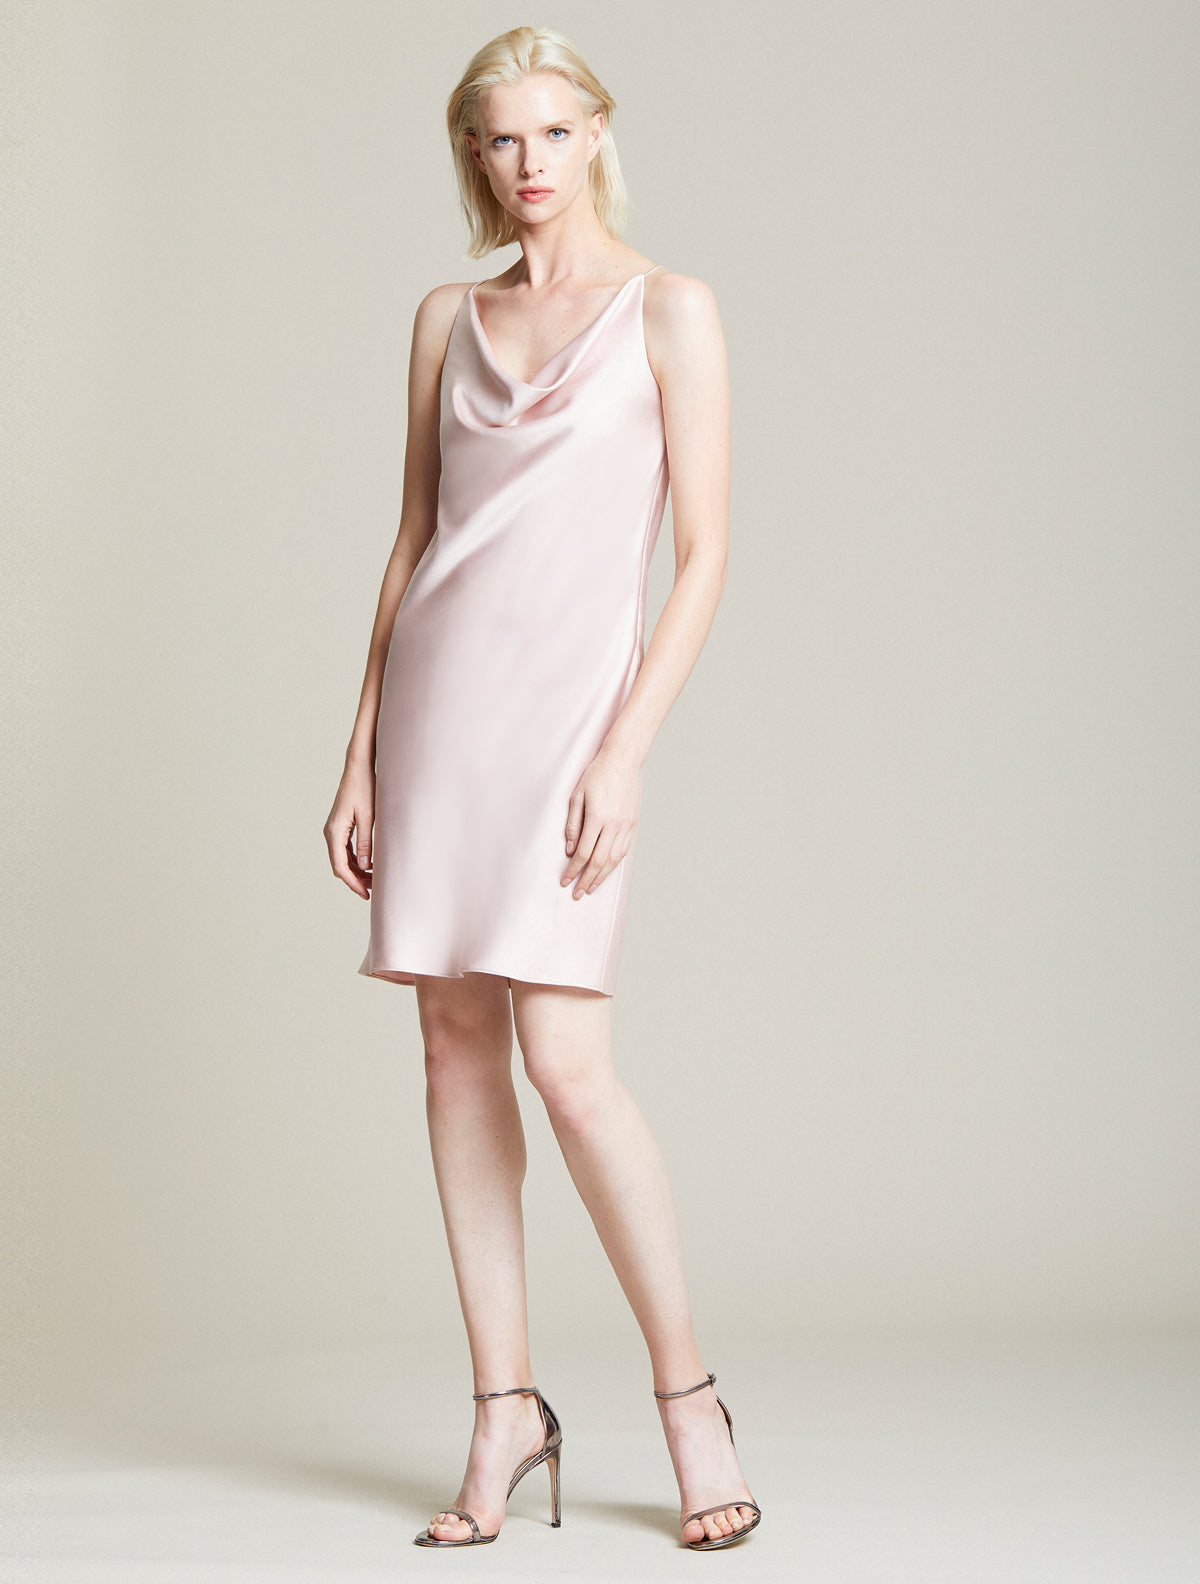 Cowl Satin Slip Dress - Halston